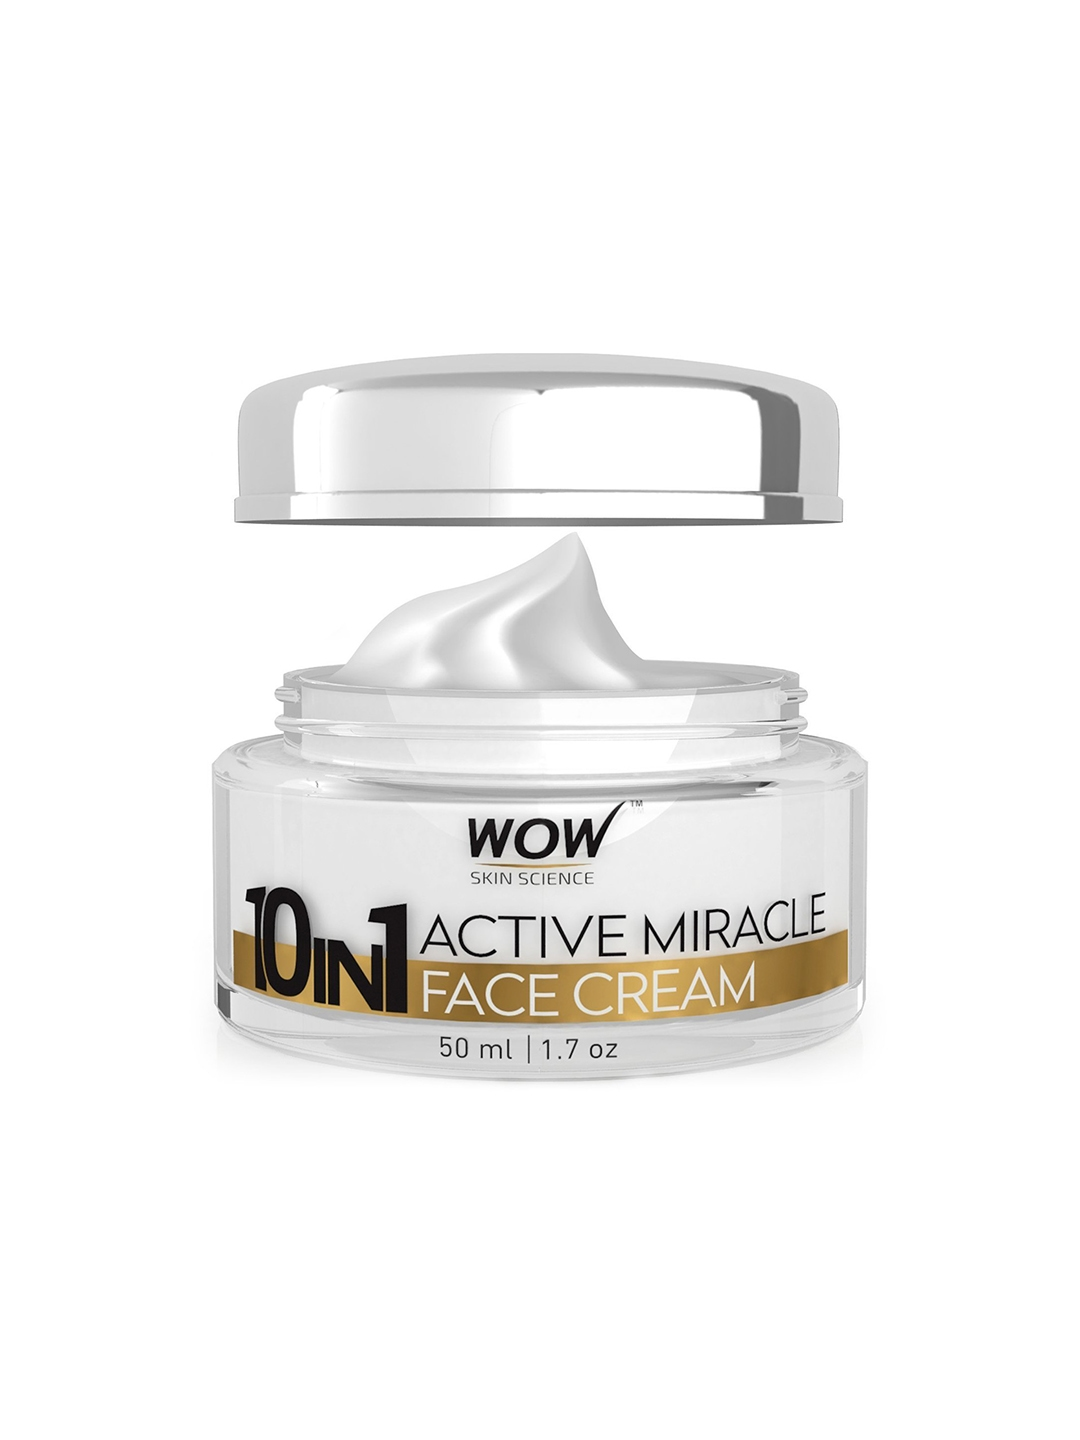 WOW Skin Science 10 in 1 Active Miracle Day Cream SPF 15 PA++   50ml WOW SKIN SCIENCE Face Moisturisers